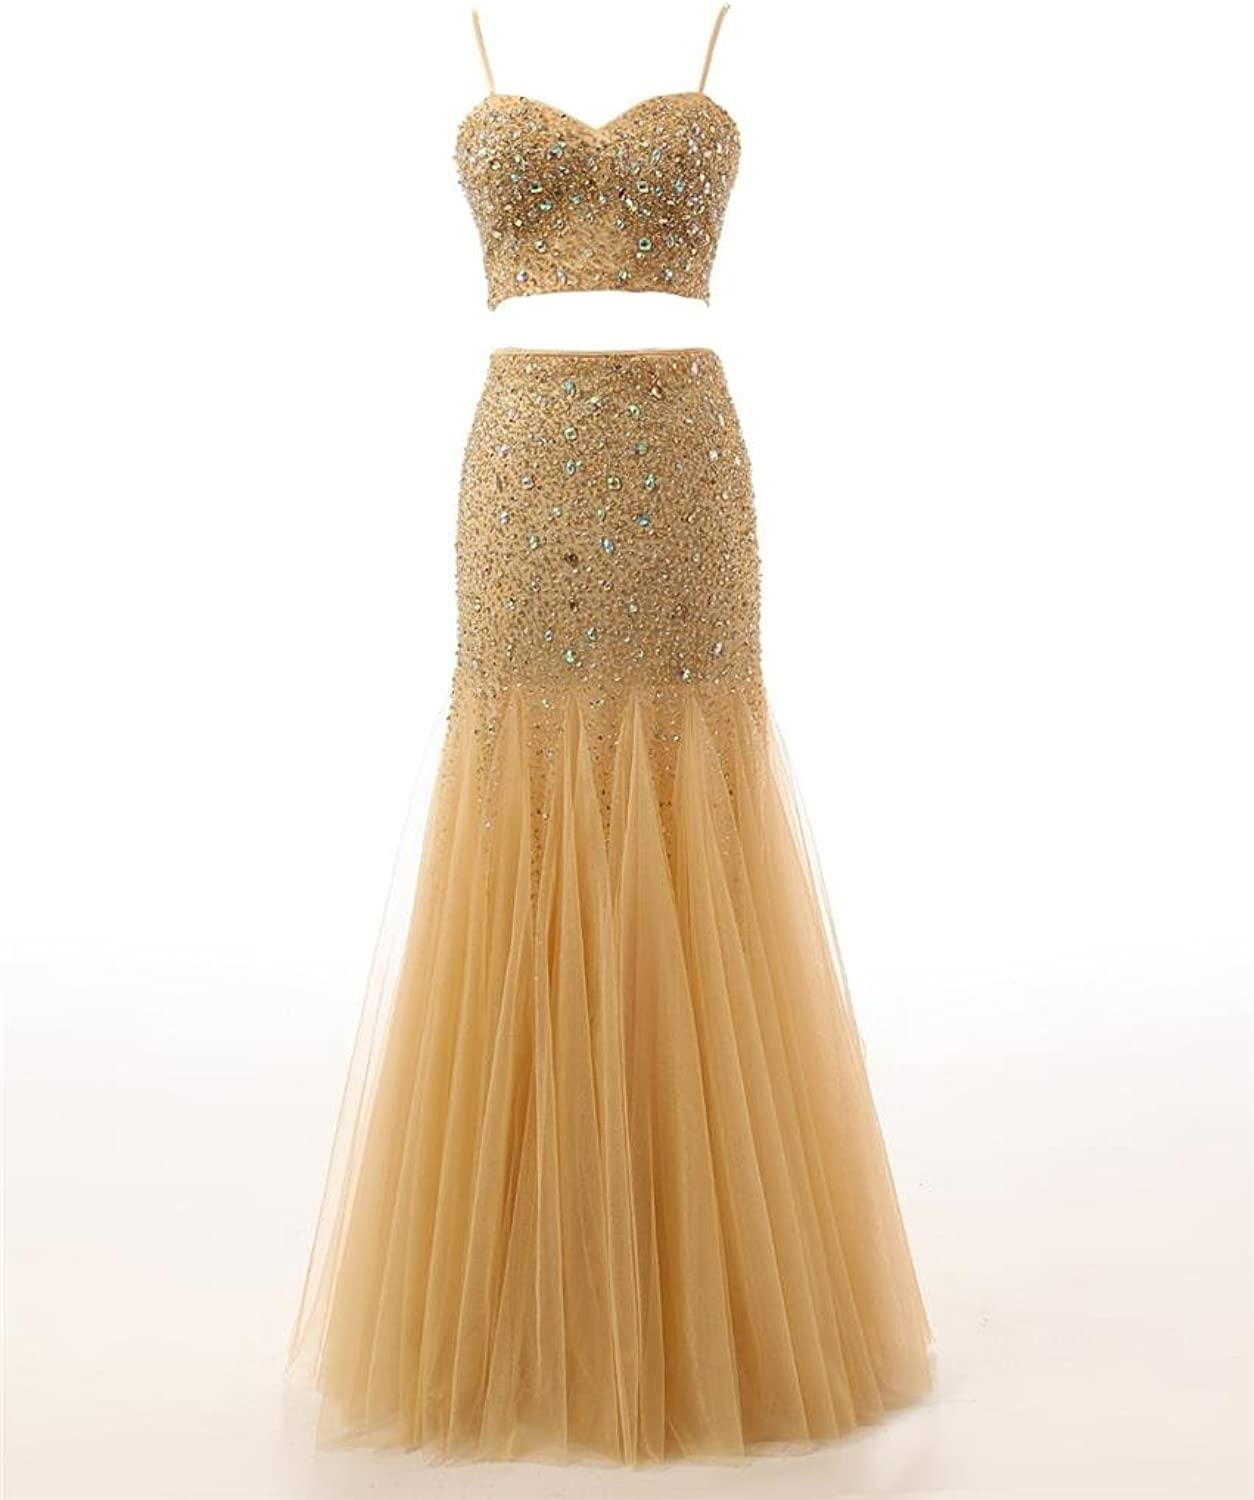 Changjie Women's Crystal Bead Tulle Two Piece Prom Dresses Evening Gown C158